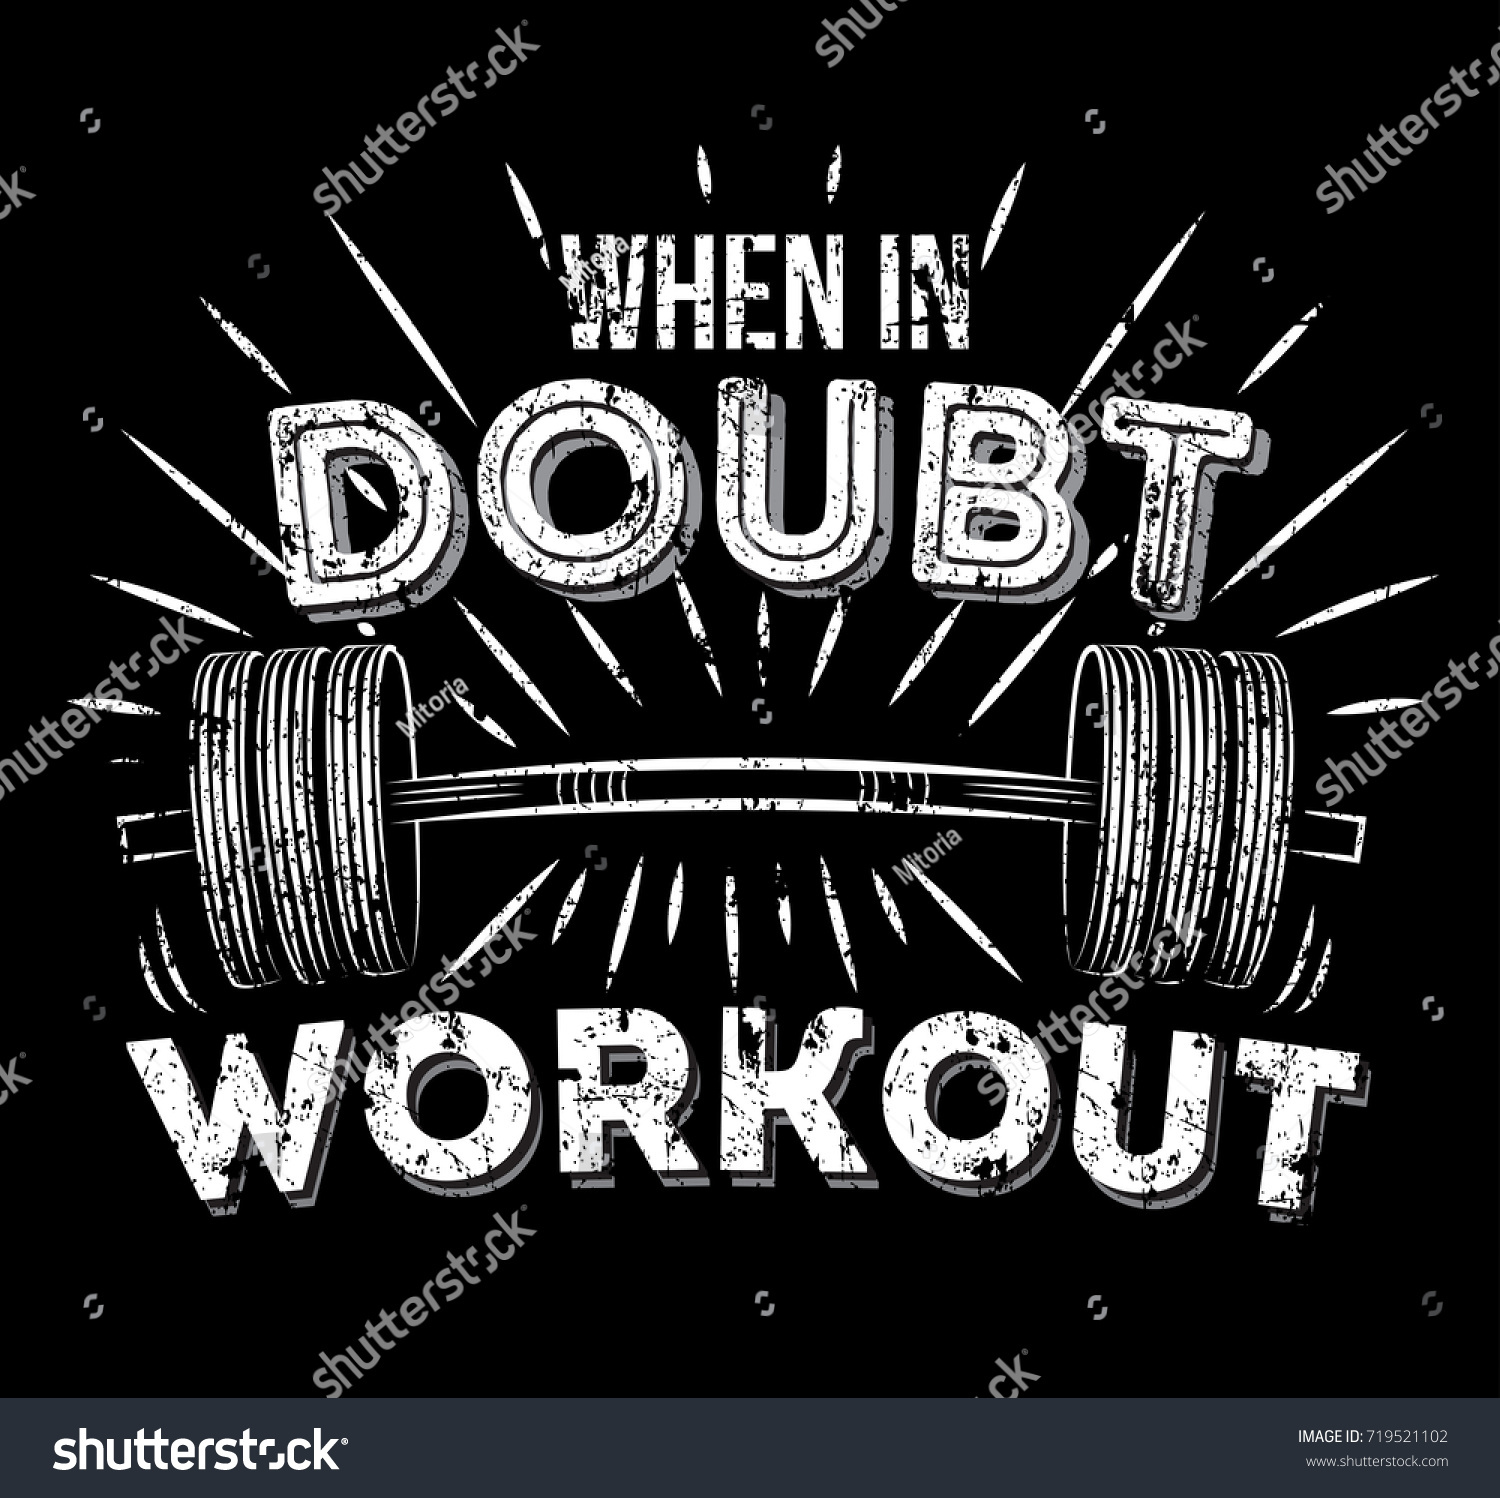 When In Doubt Workout Inspirational Quote With Grunge Effect. Gym Workout  Motivation Poster. Barbell